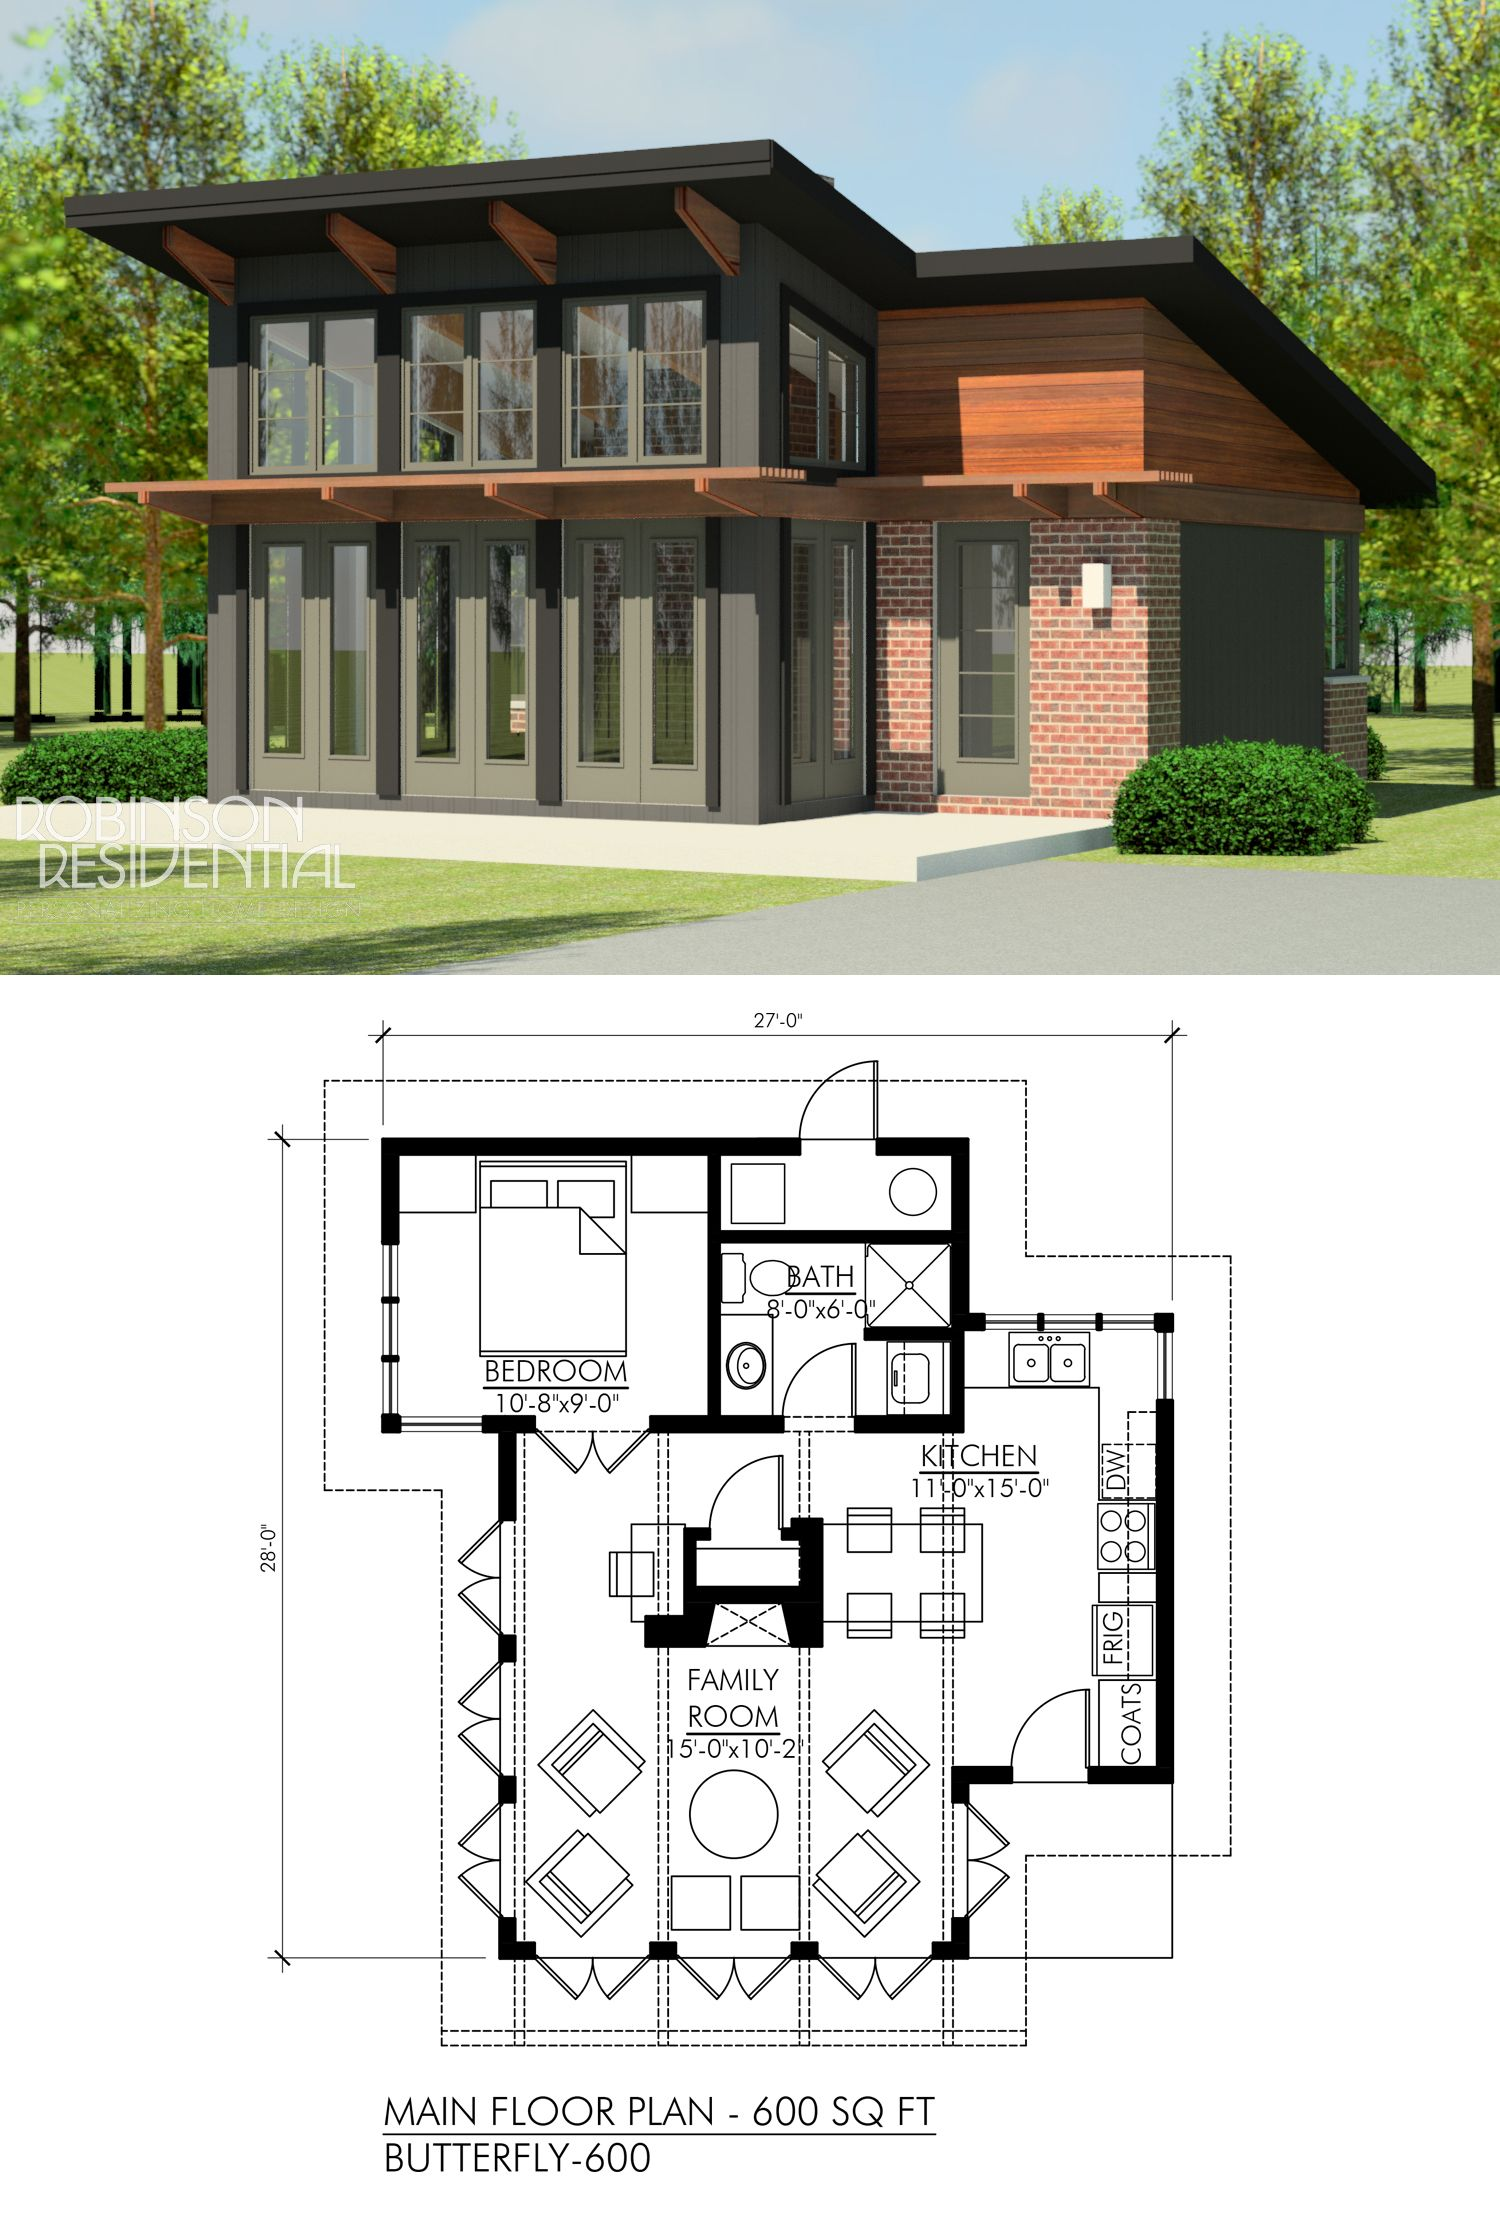 Contemporary Butterfly 600 Robinson Plans House Plan With Loft House Plans Modern House Plans